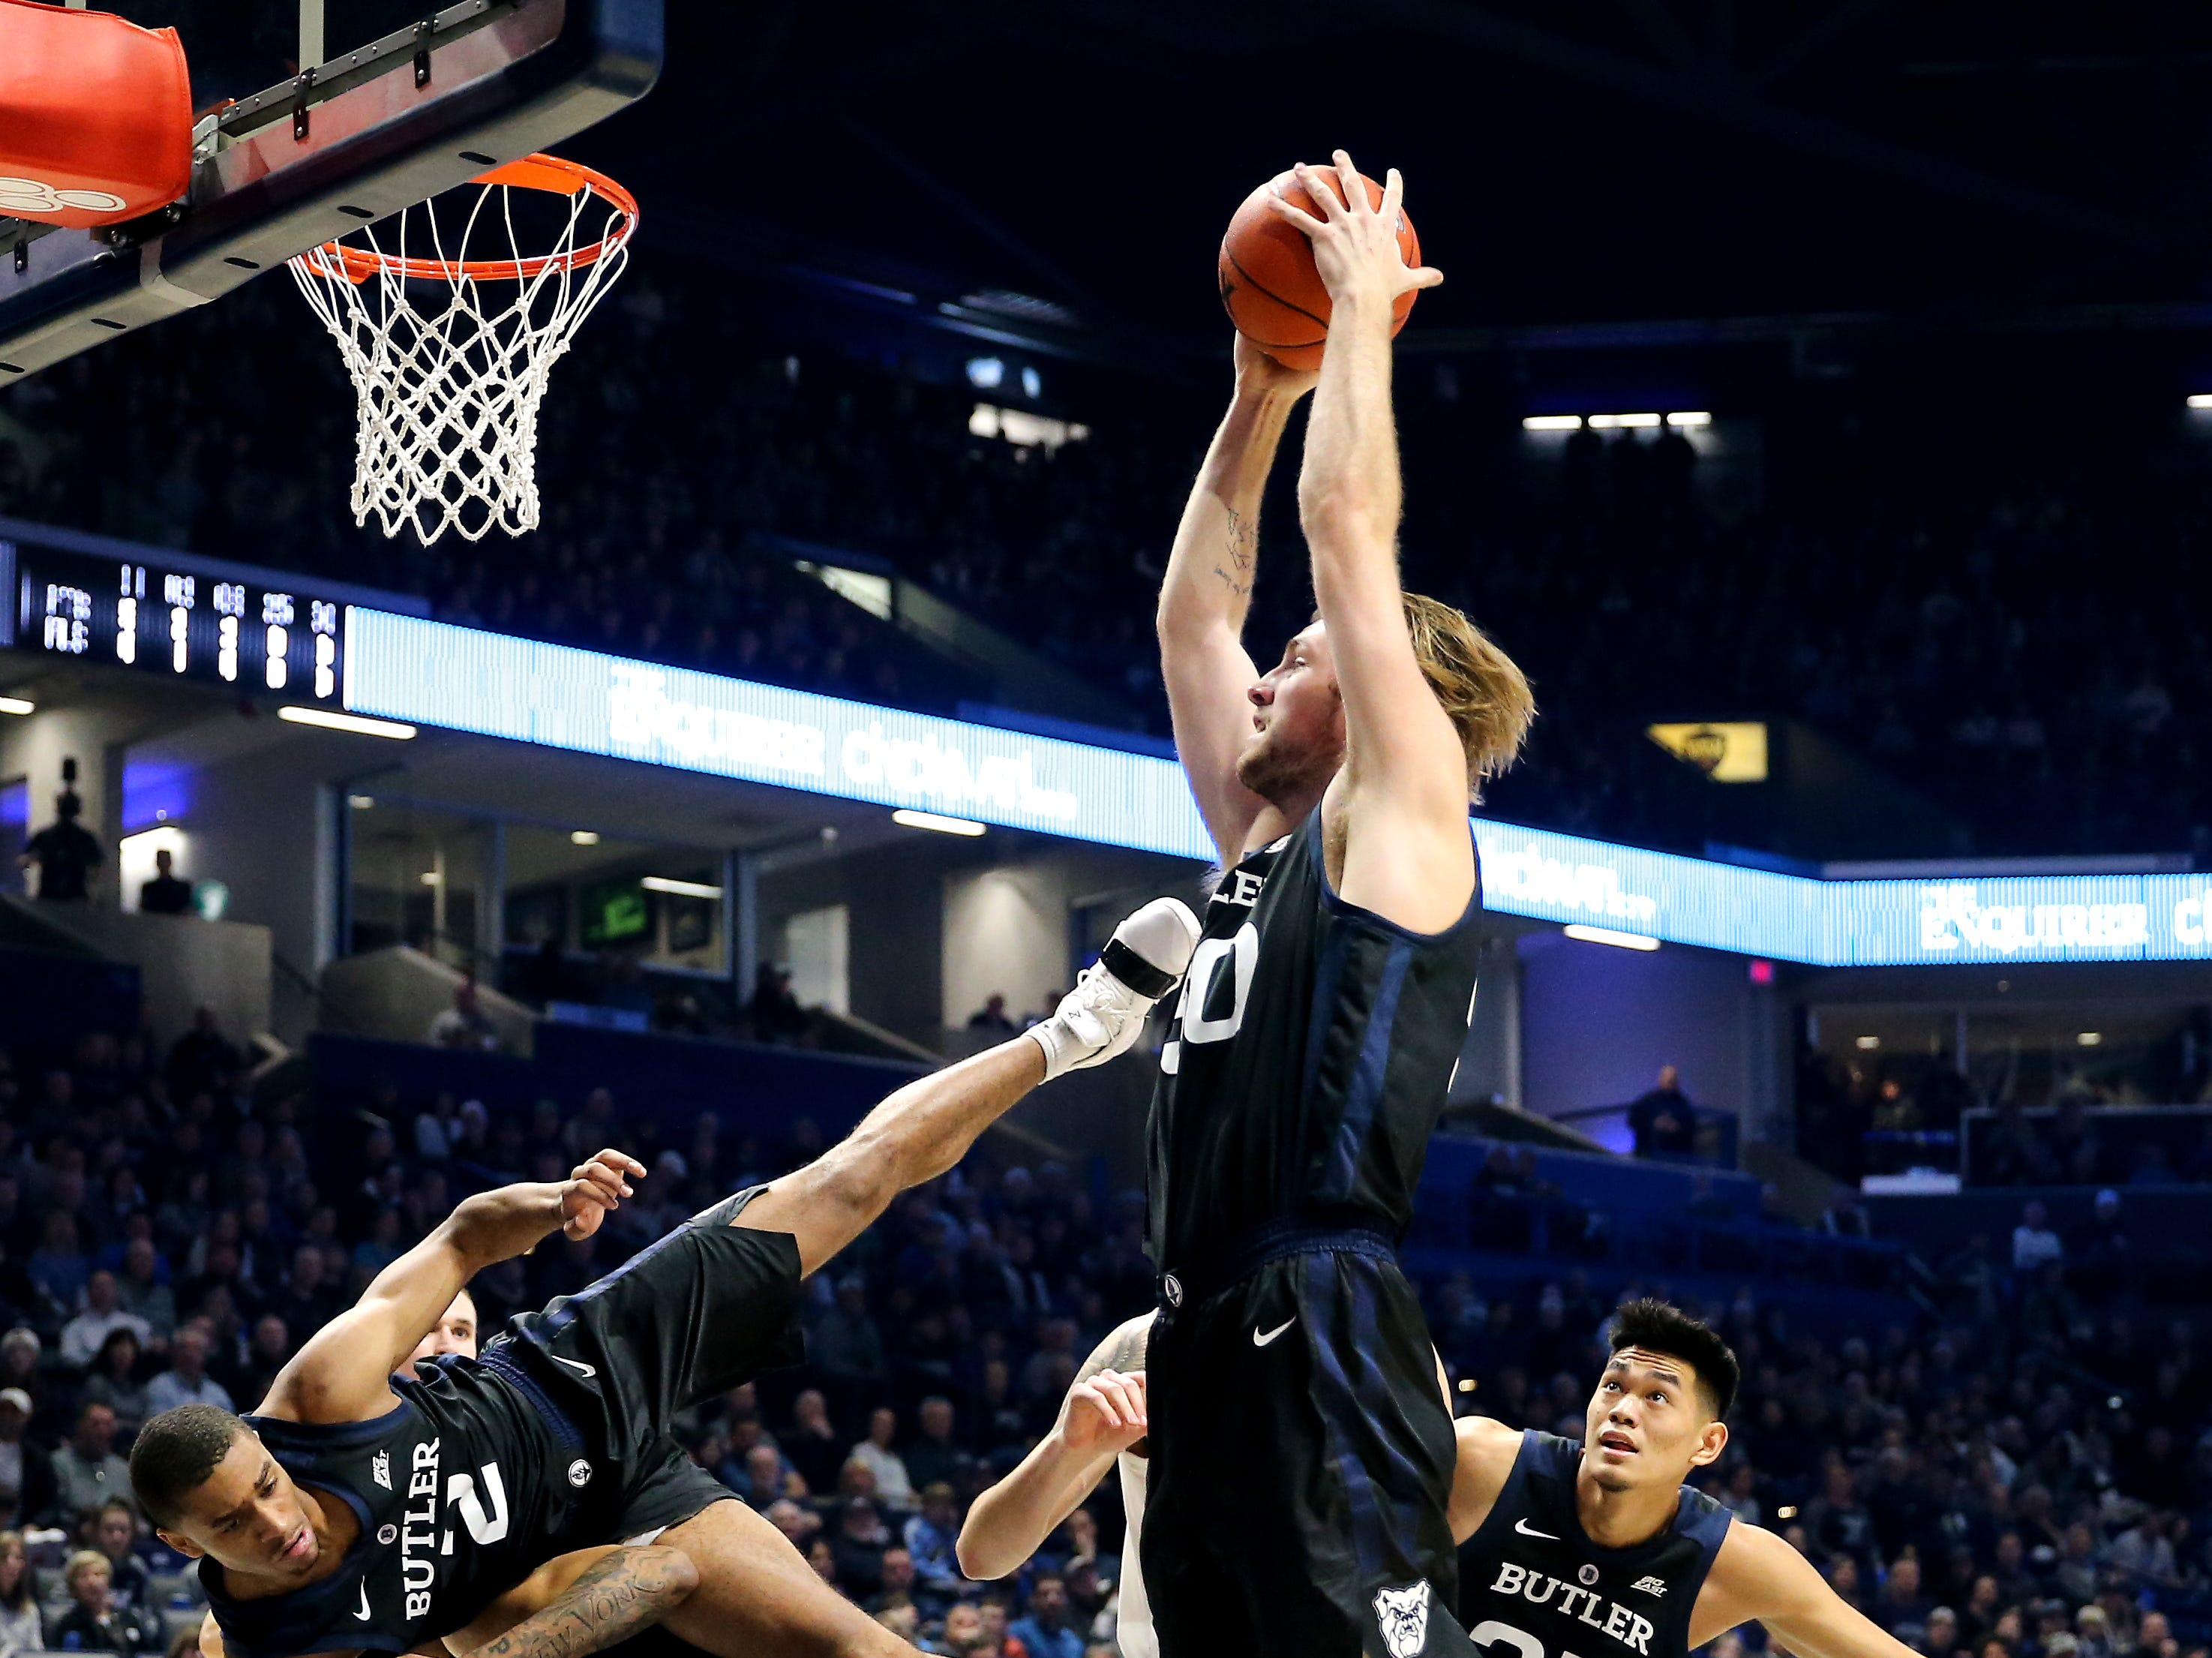 Butler Bulldogs forward Joey Brunk (50) pulls down a rebound as guard Aaron Thompson (2) is upended by teammate forward Jordan Tucker (1), background, in the first half of an NCAA college basketball game, Sunday, Jan. 13, 2019, at Cintas Center in Cincinnati.